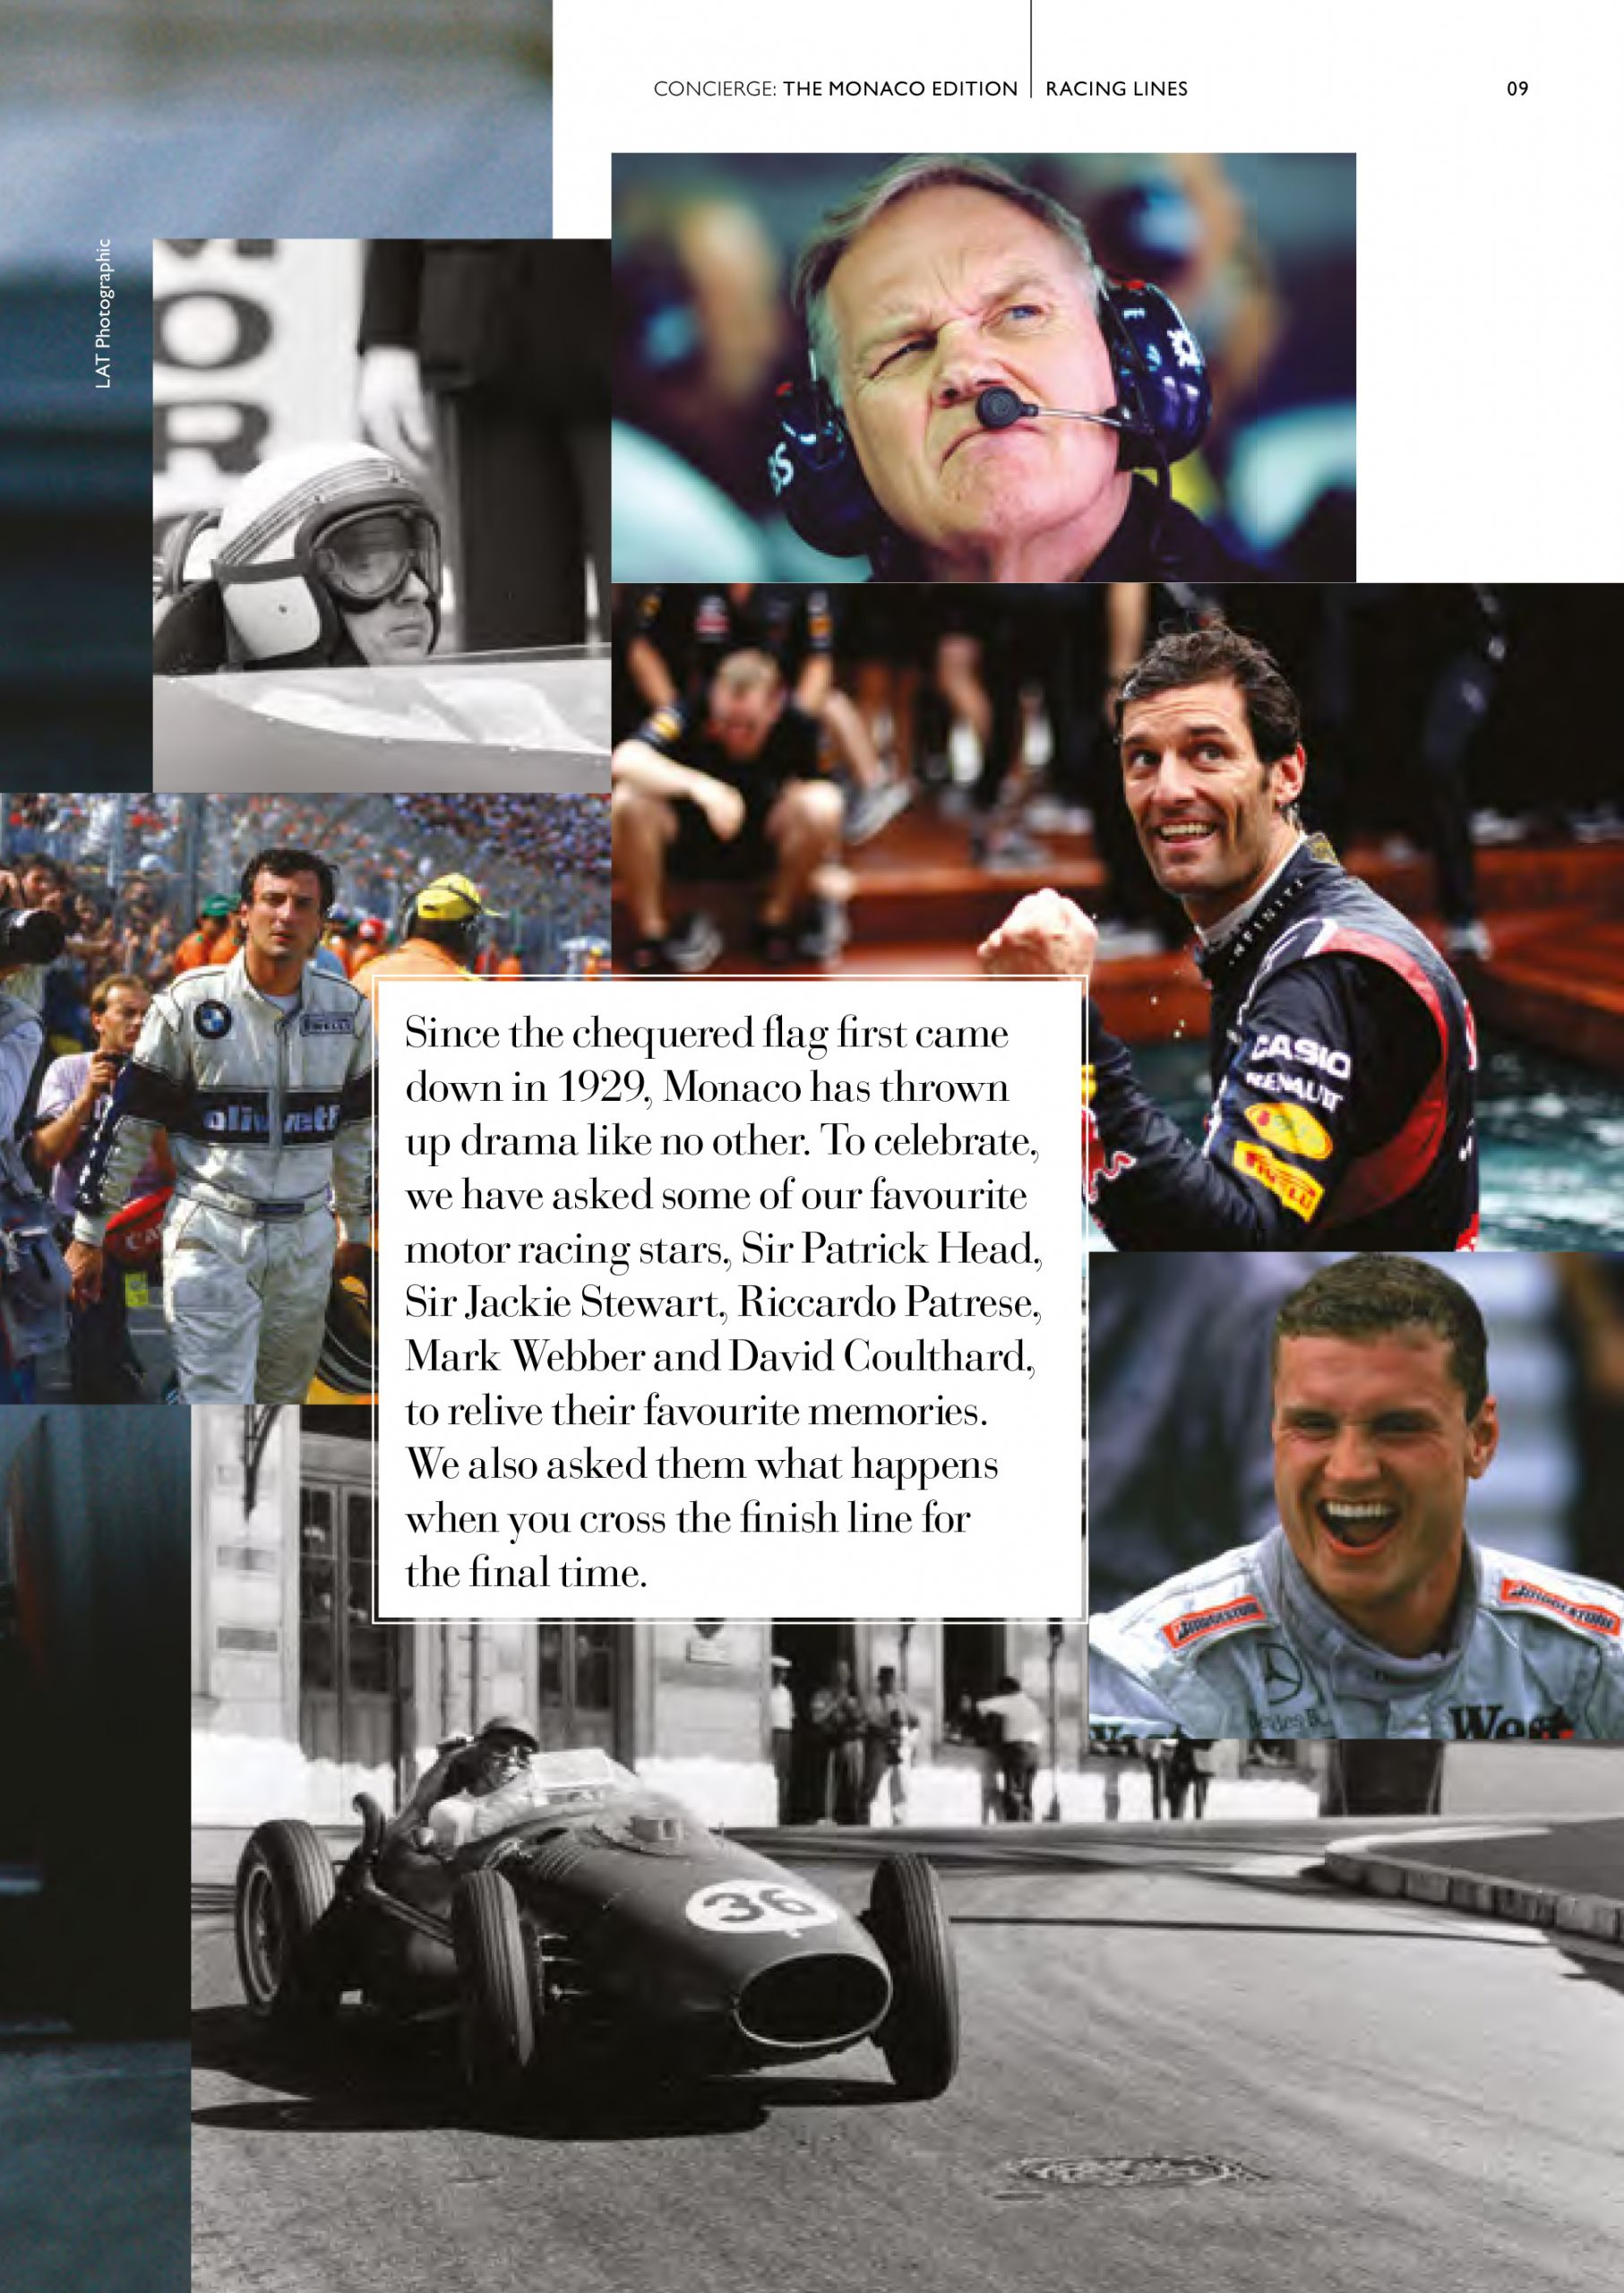 tom claeren interview concierge magazine Monaco gp